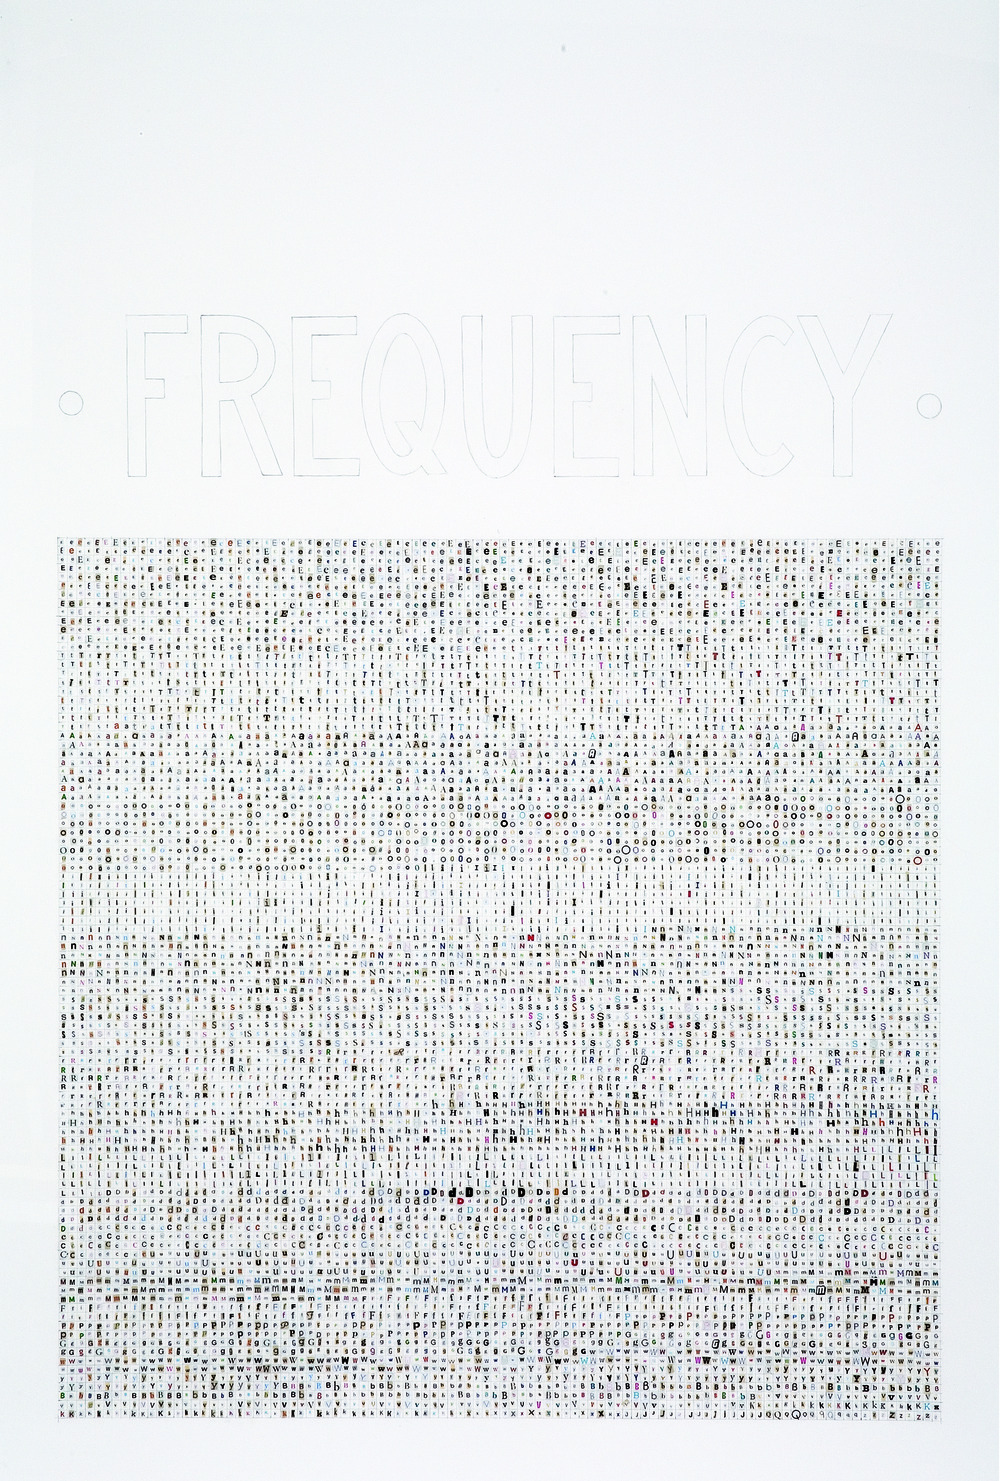 sweetchimera:  Frequency, 2005Pencil and collage of 10,000 cut letters on paper44 x 30 inches | 111.8 x 76.2 cmBy Tauba Auerbach